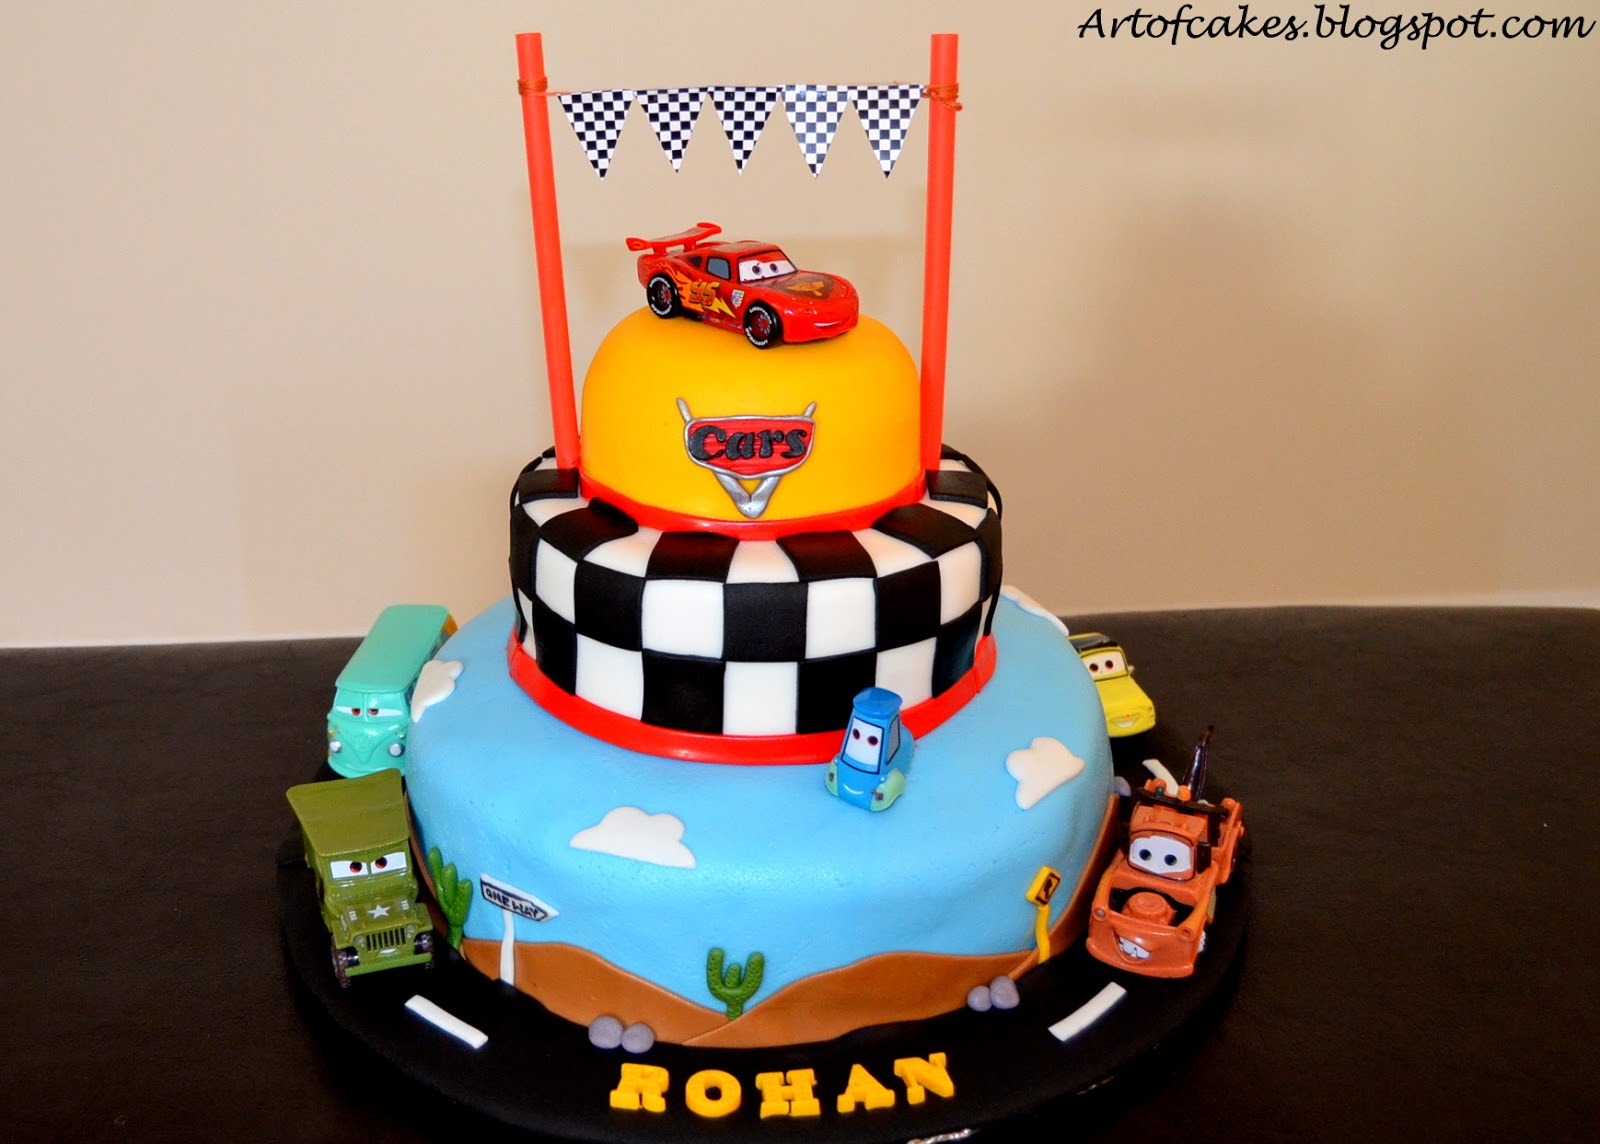 Birthday Cake For Boy 3 Years Old ~ Art of cakes disney cars theme fondant cake